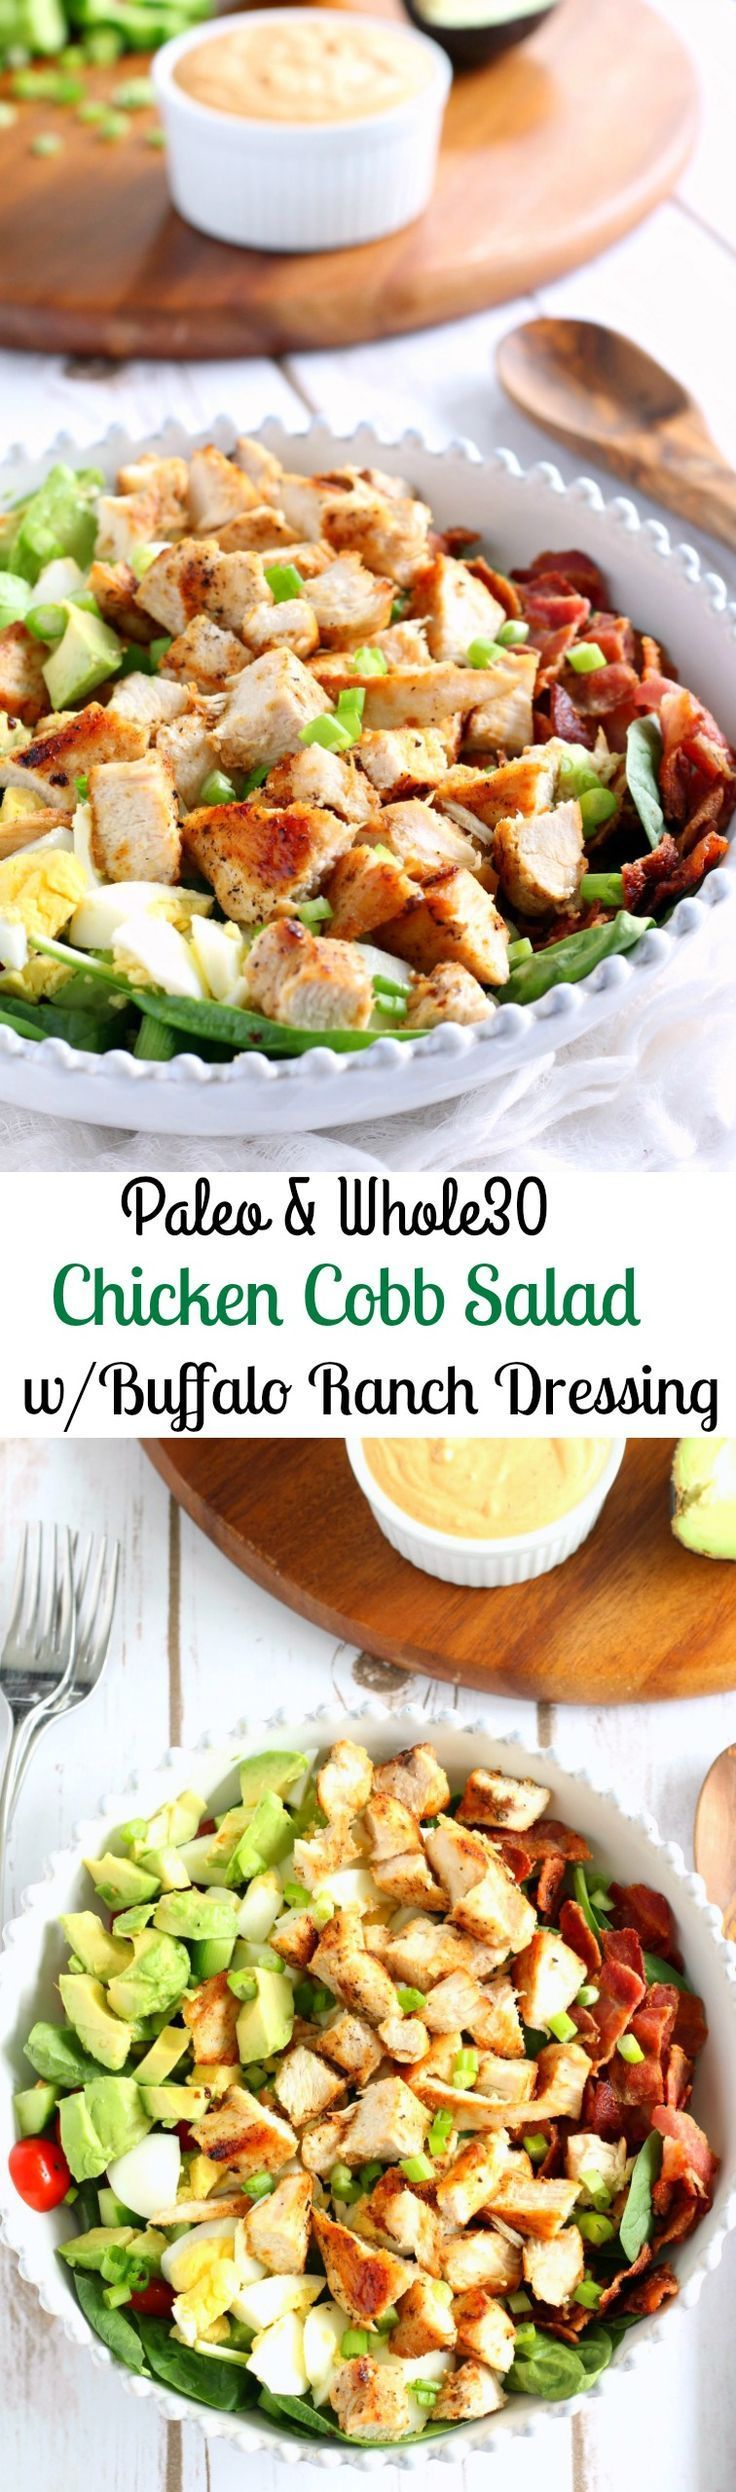 Whole 30 and paleo chicken cobb salad with buffalo ranch dressing two ways! One is